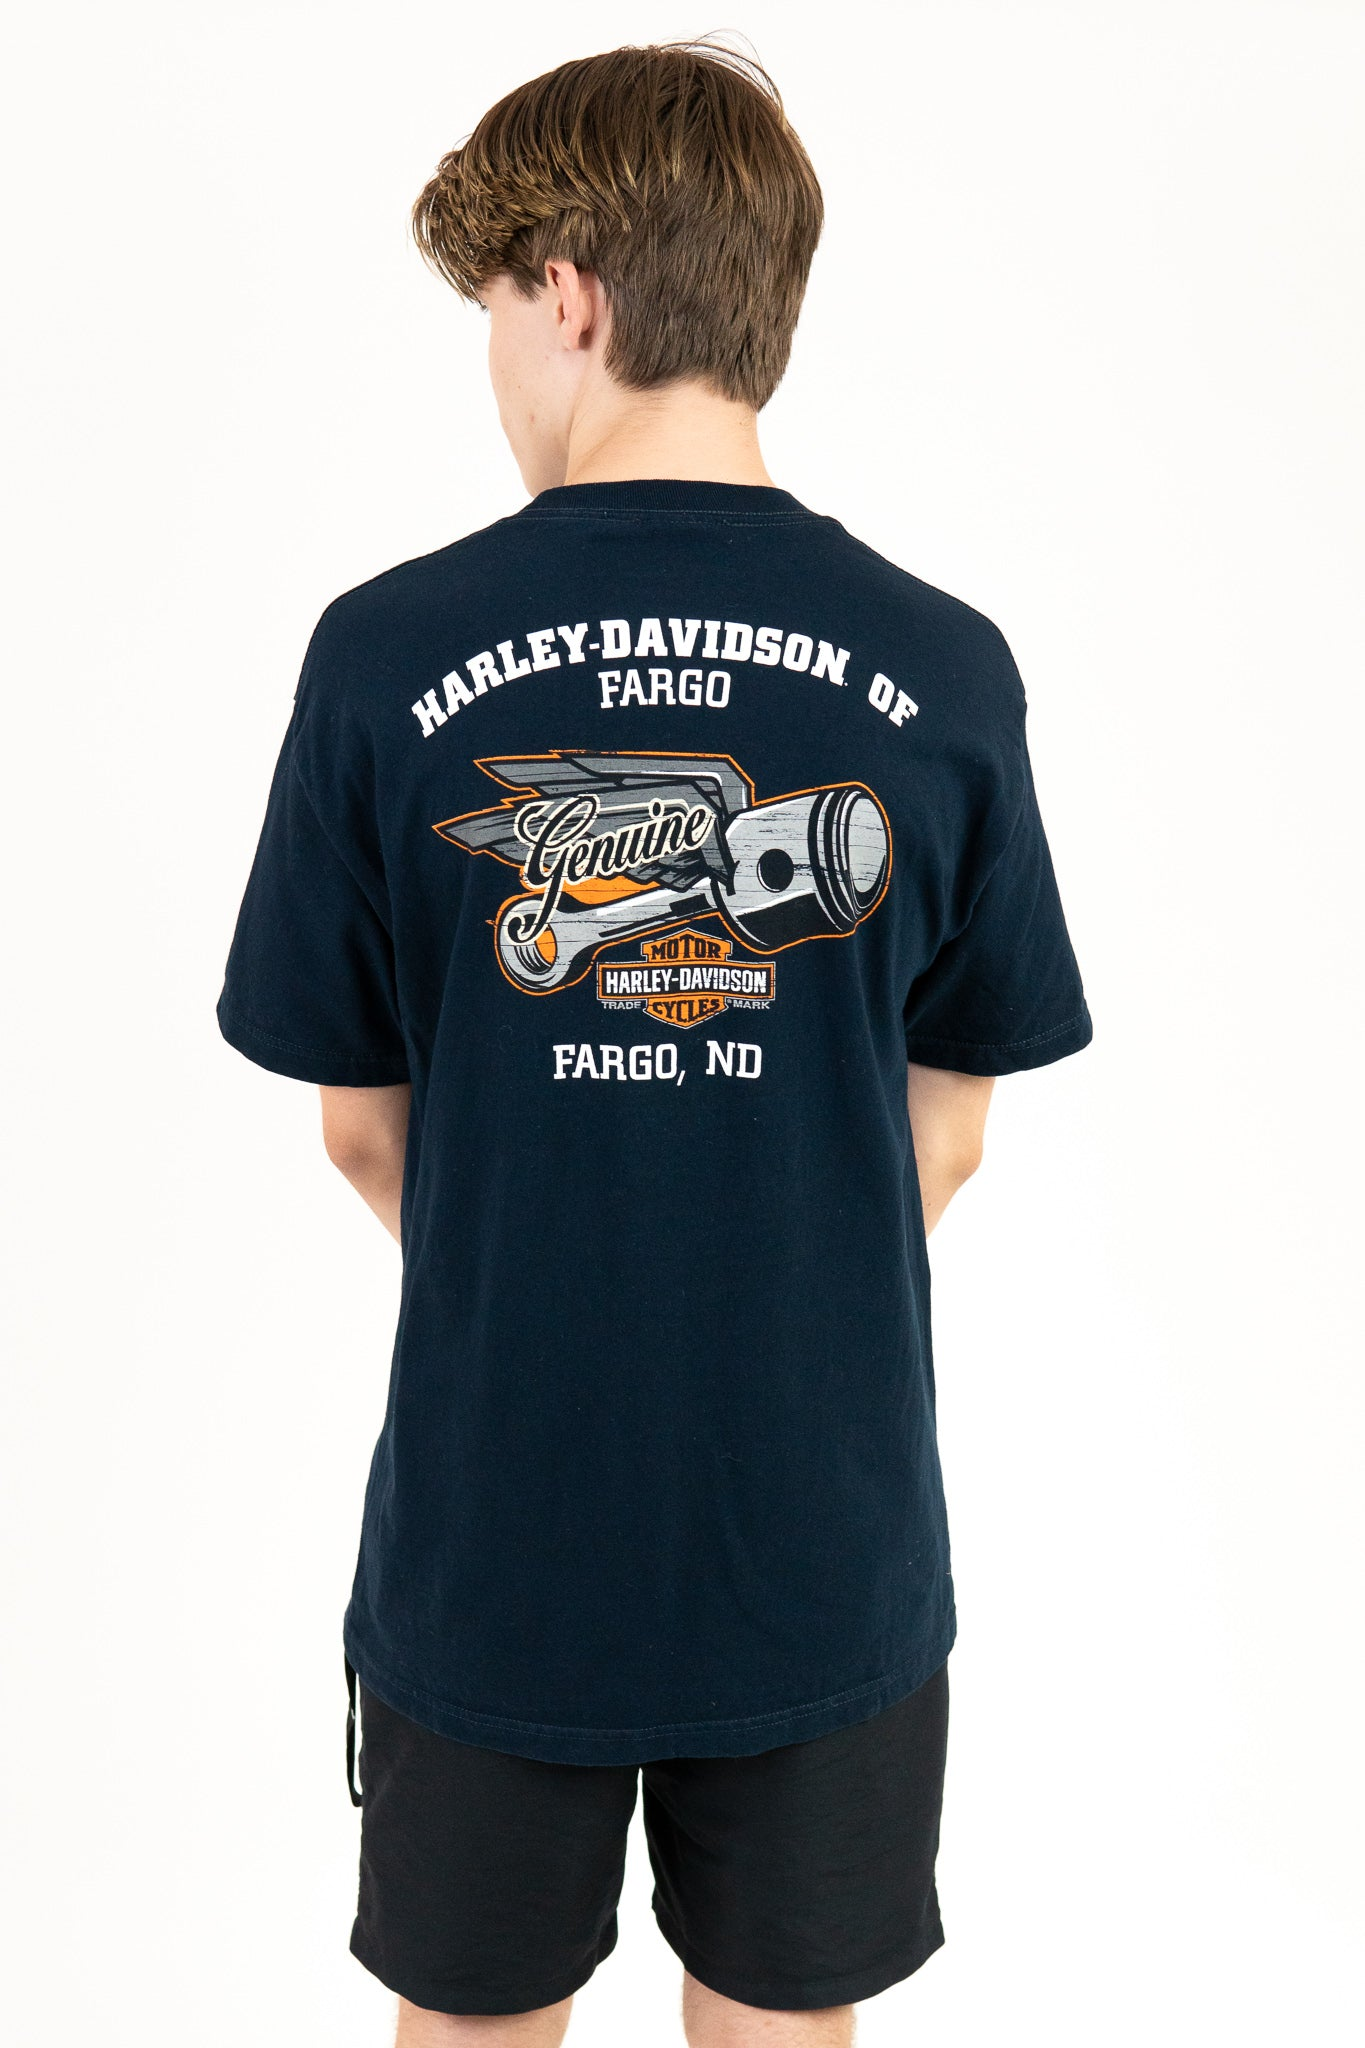 Vintage Harley Davidson Trusted & Reliable Tee / Size L